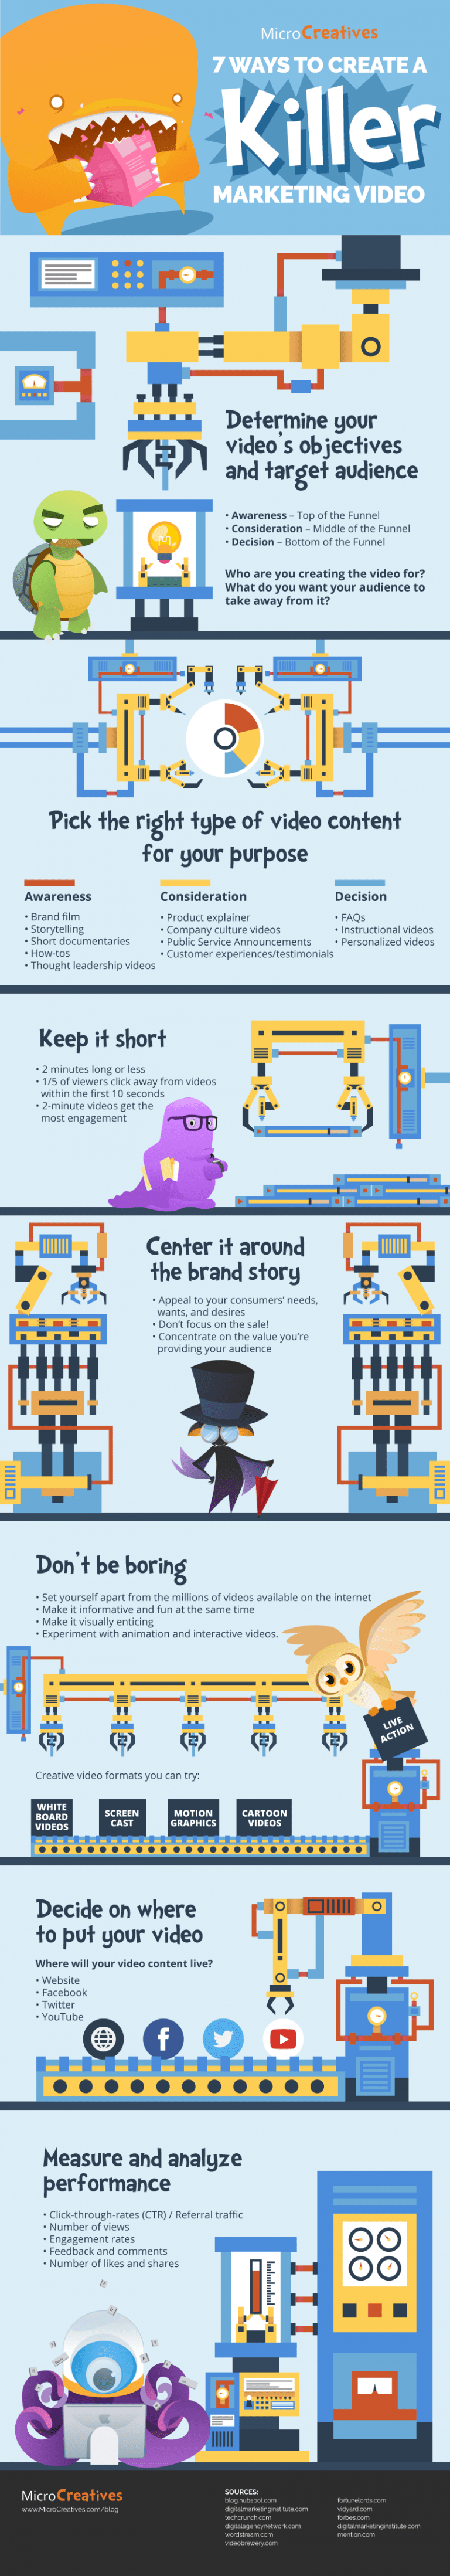 Seven Ways to Create Killer Marketing Videos Infographic Image